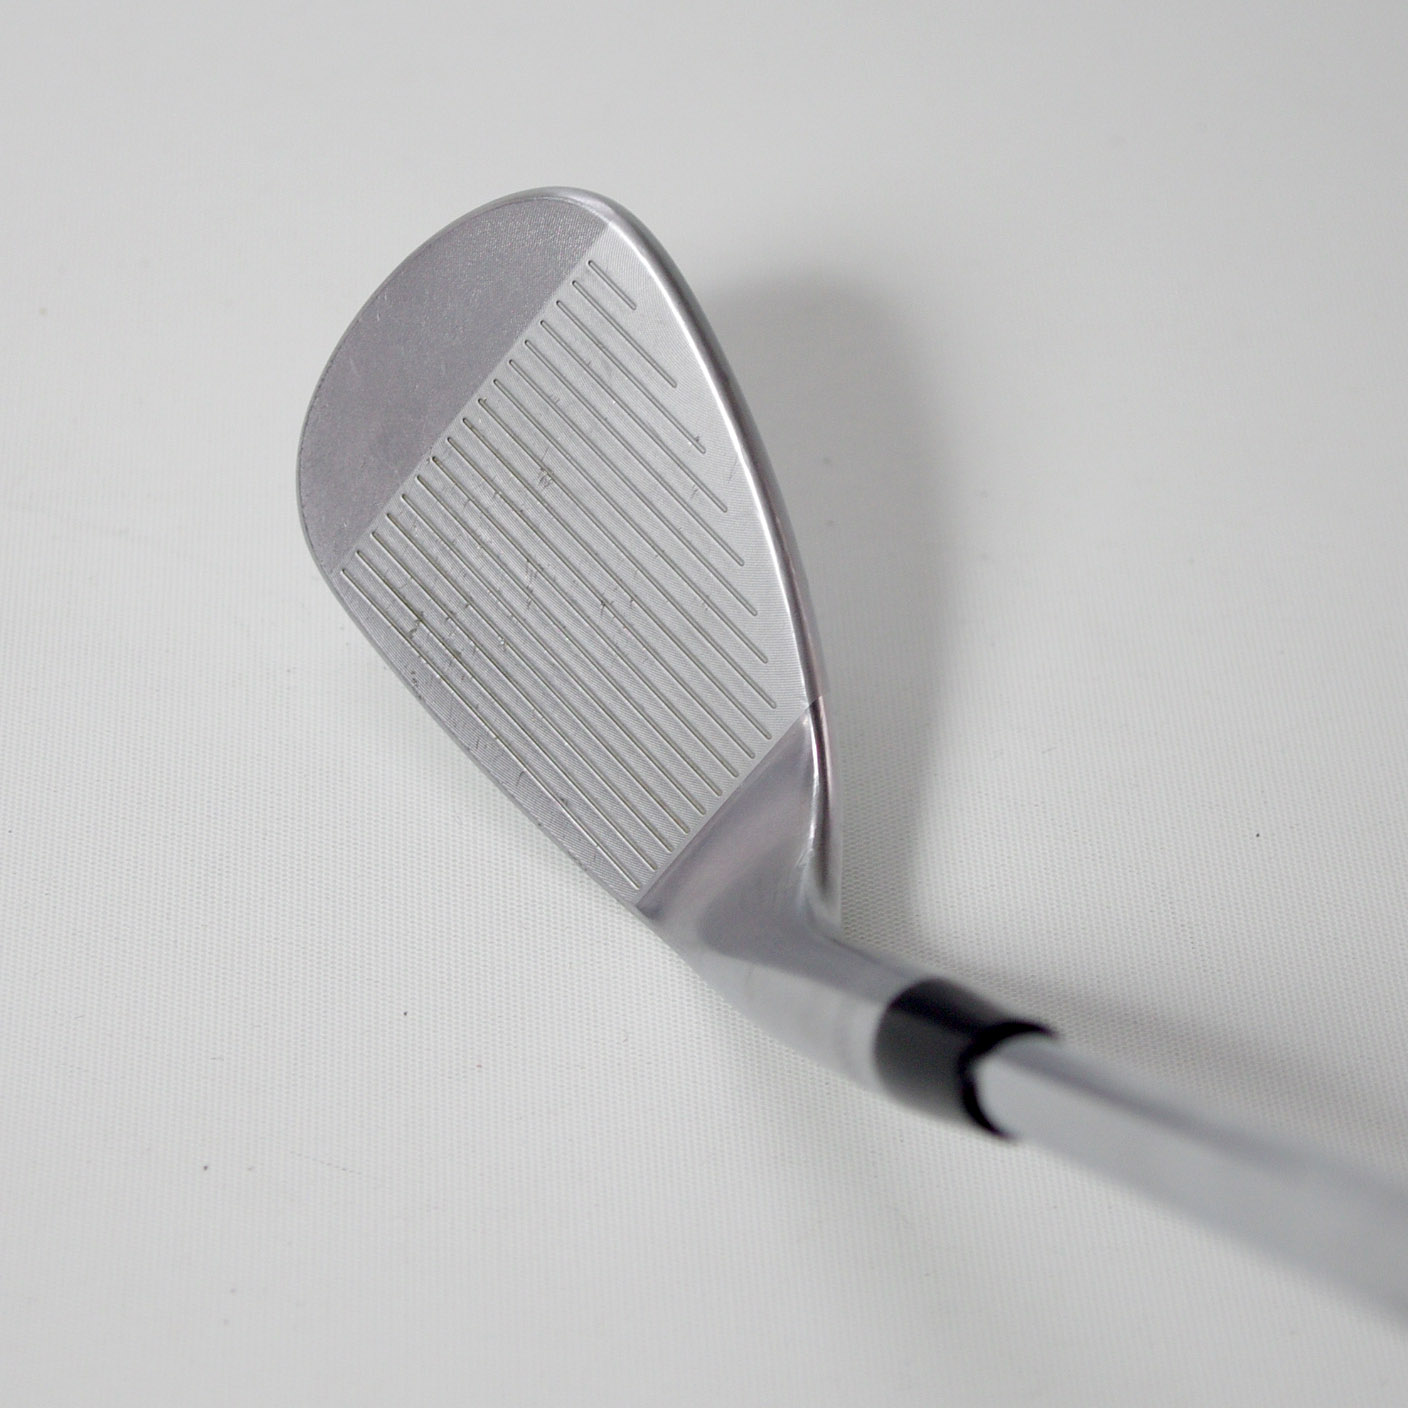 Gậy golf Wedge Titleist cũ COLD FORGED56-08DG-S200 PCW-TL42